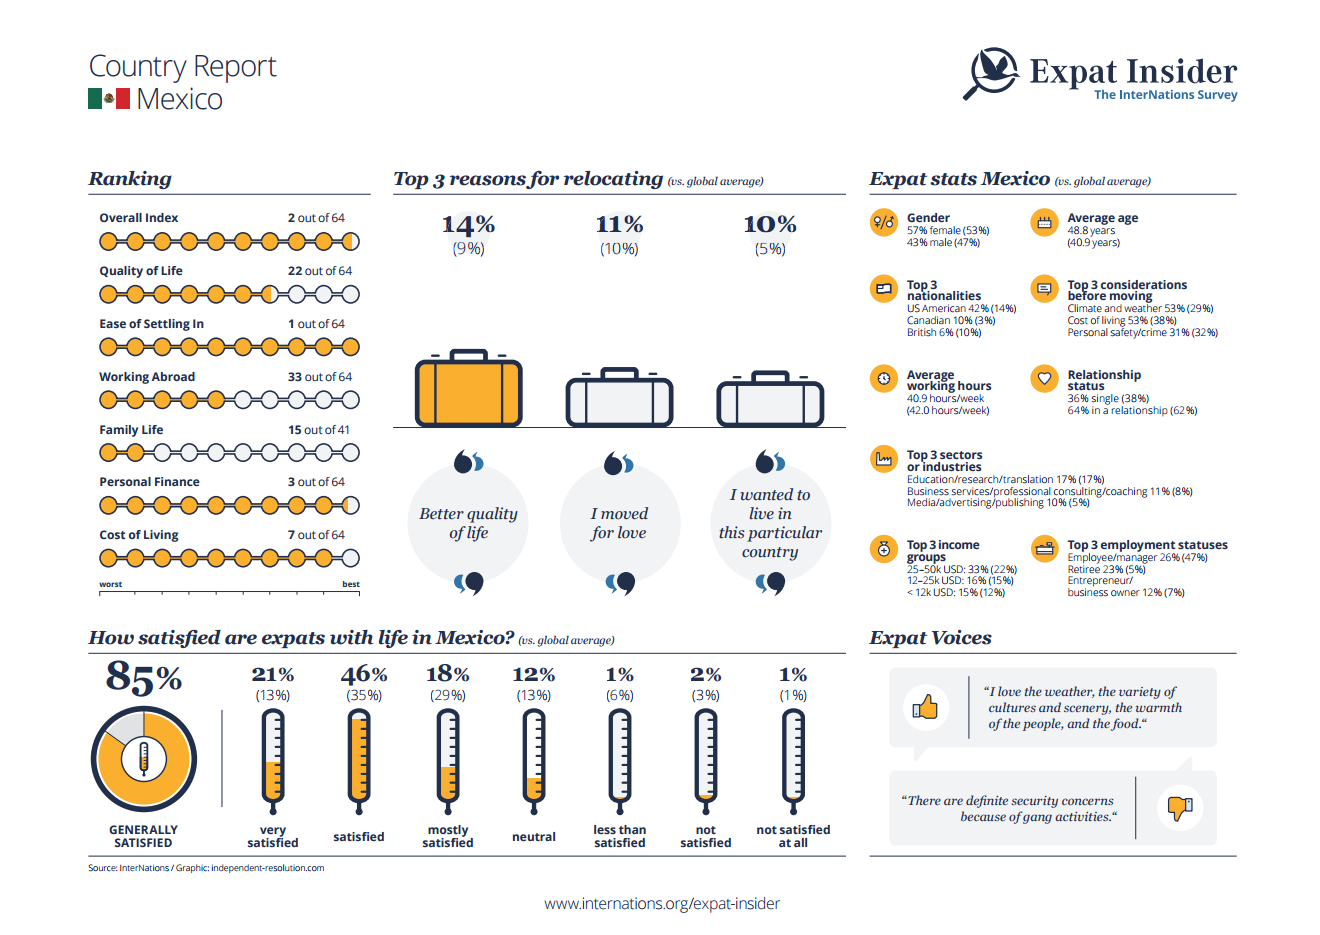 Expat statistics for Mexico - infographic